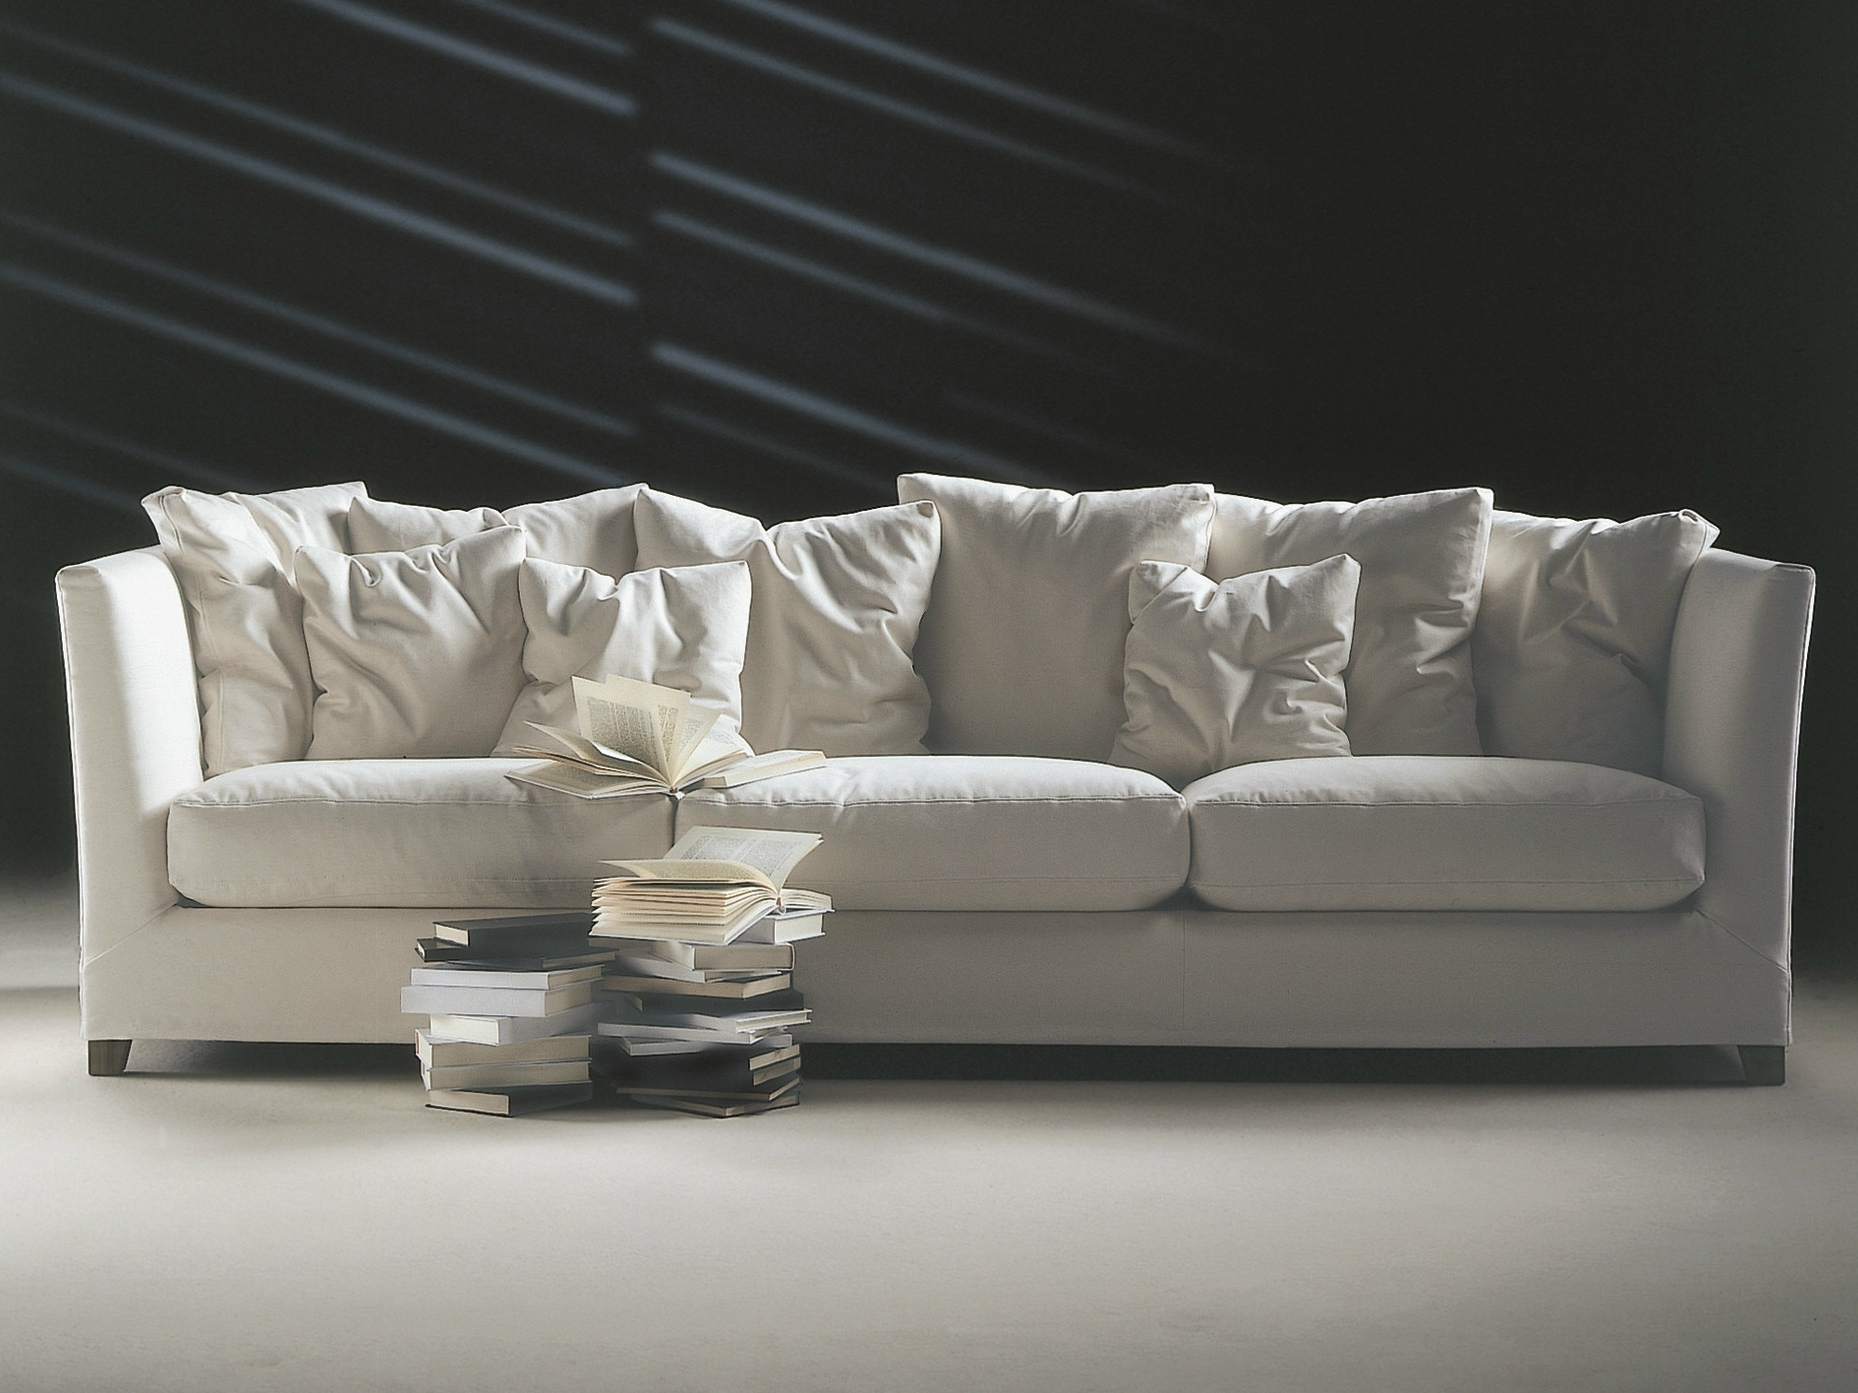 Most Recently Released Sofas With Removable Cover Intended For Sofas Removable Covers Avec Sofa Design Sofa With Removable Cover (View 13 of 15)